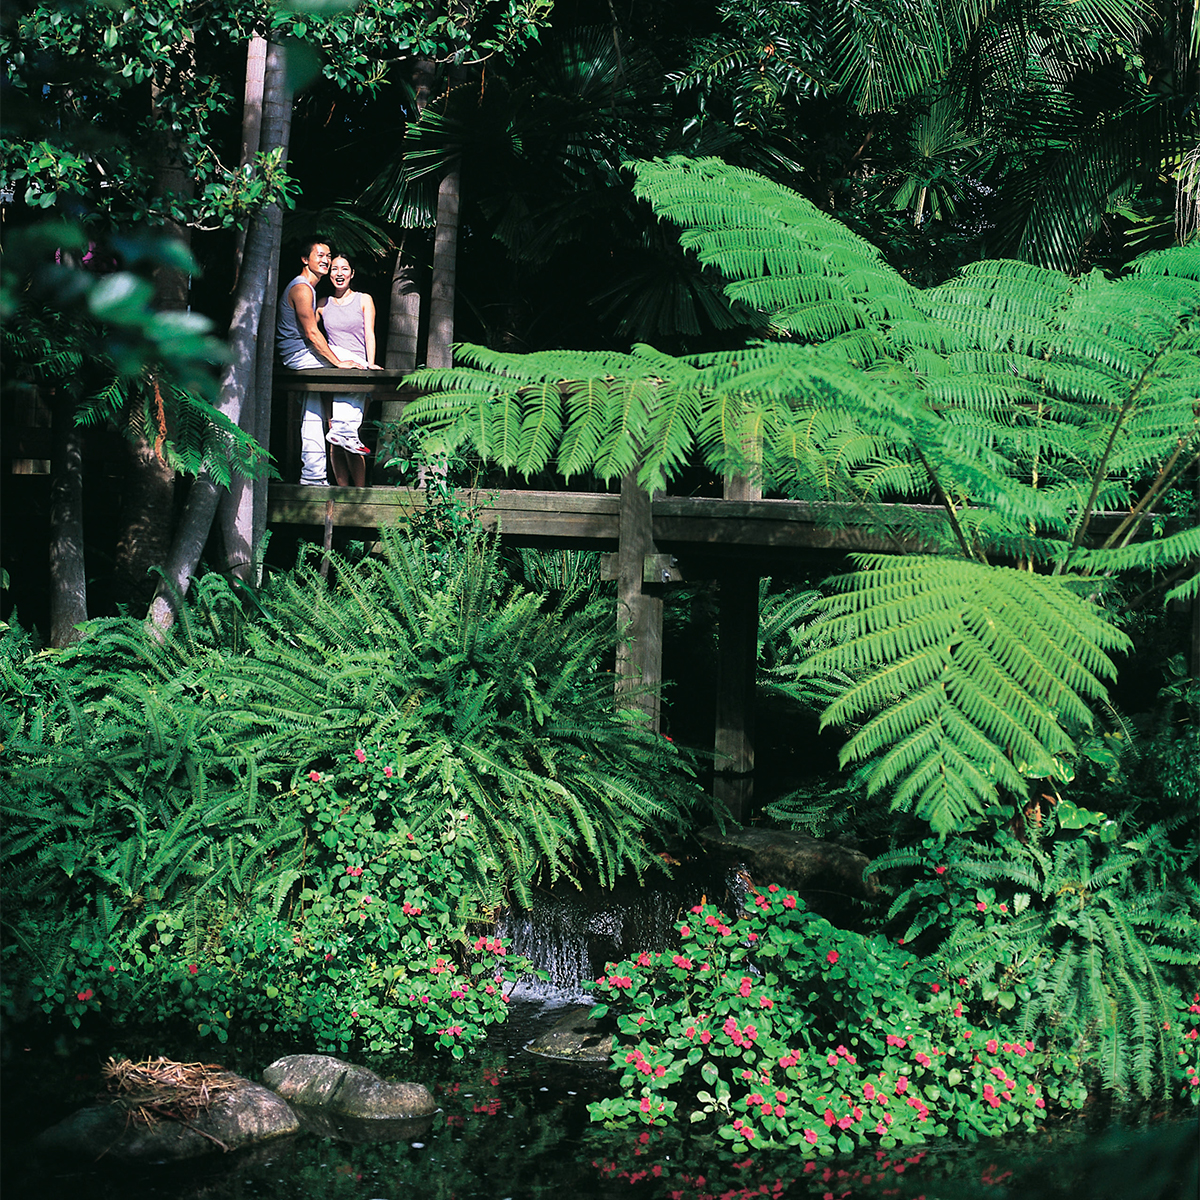 Two people standing on a bridge in the midst of a rainforest area